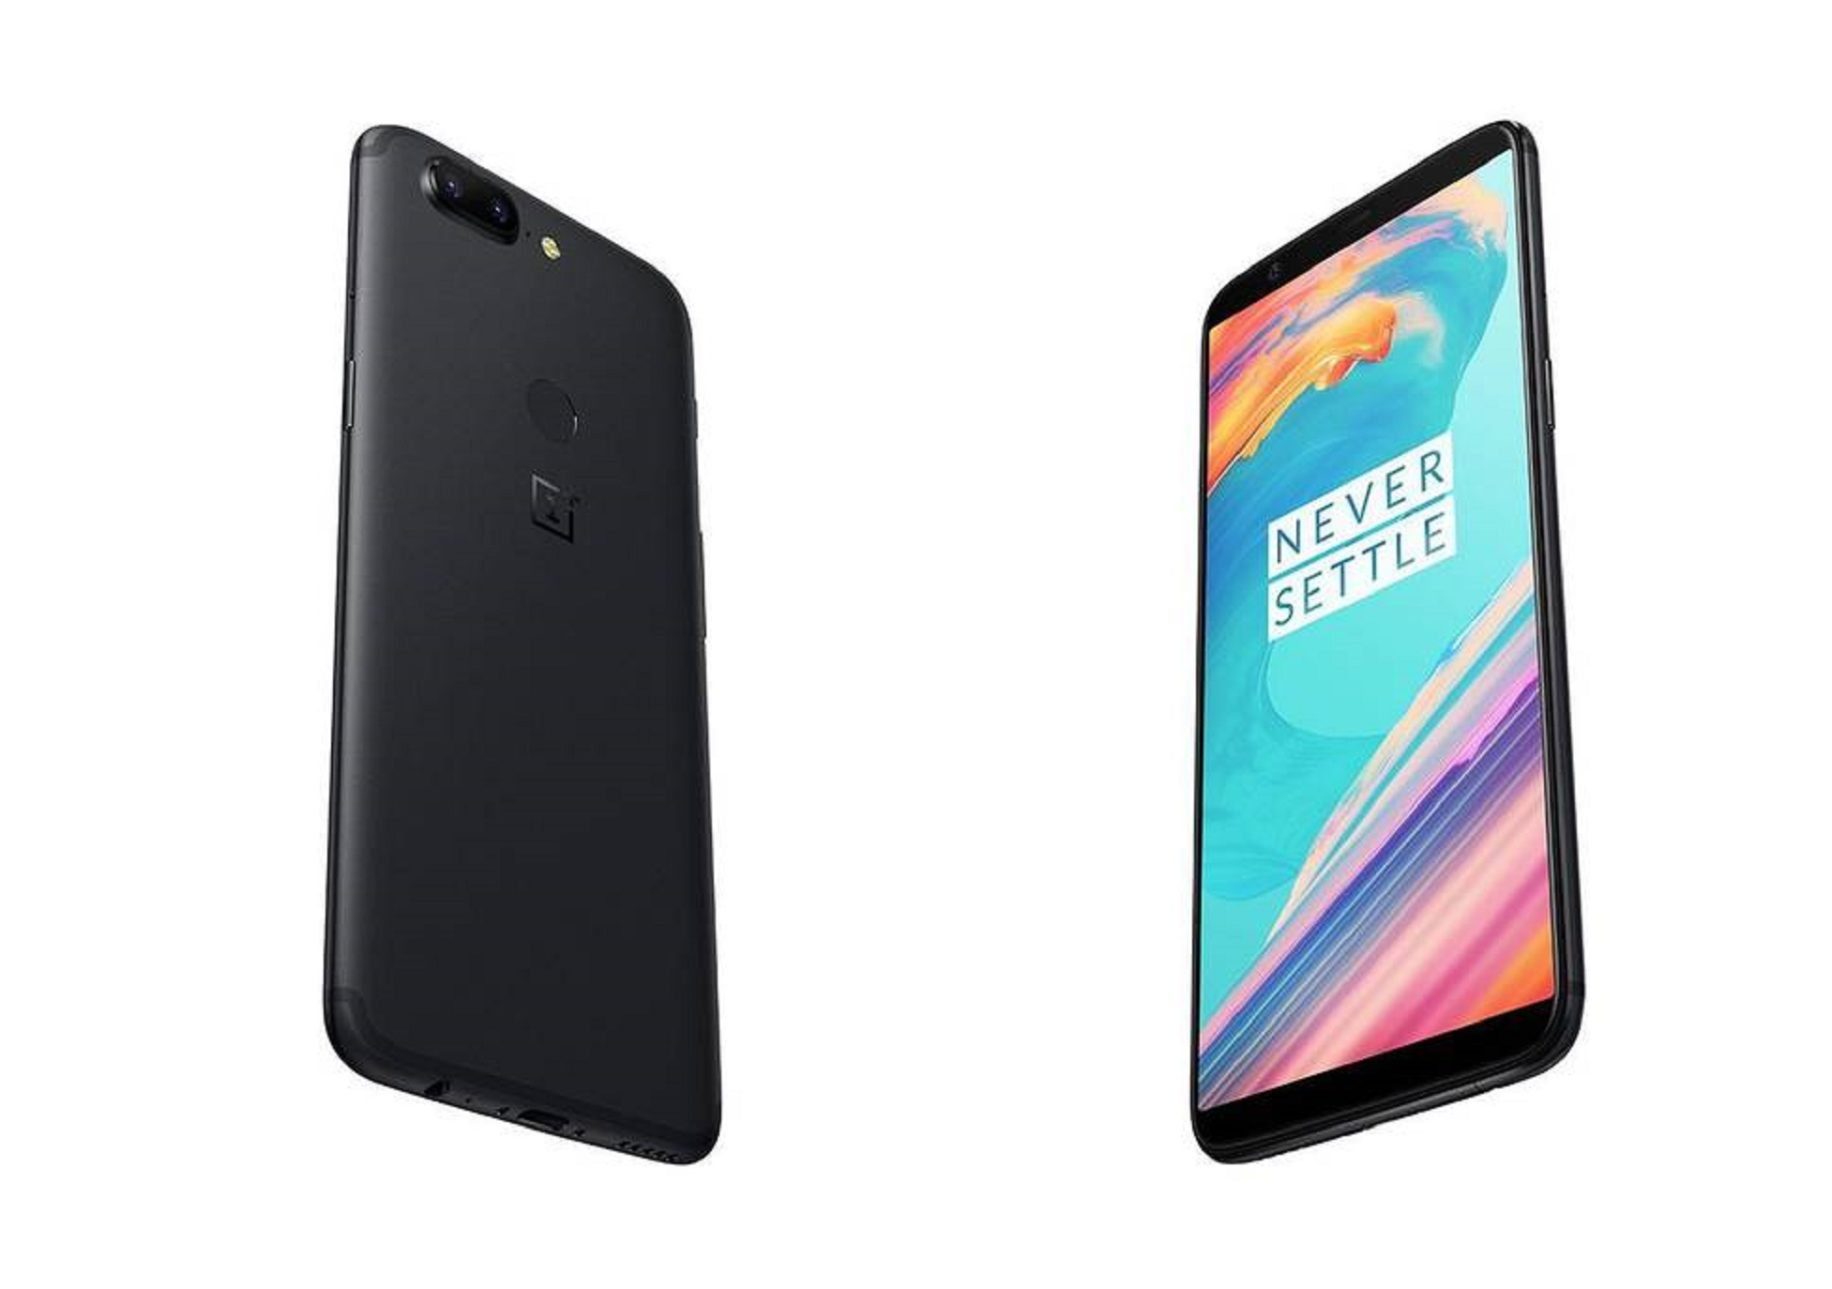 OnePlus 6 specifications reveals: Check it out